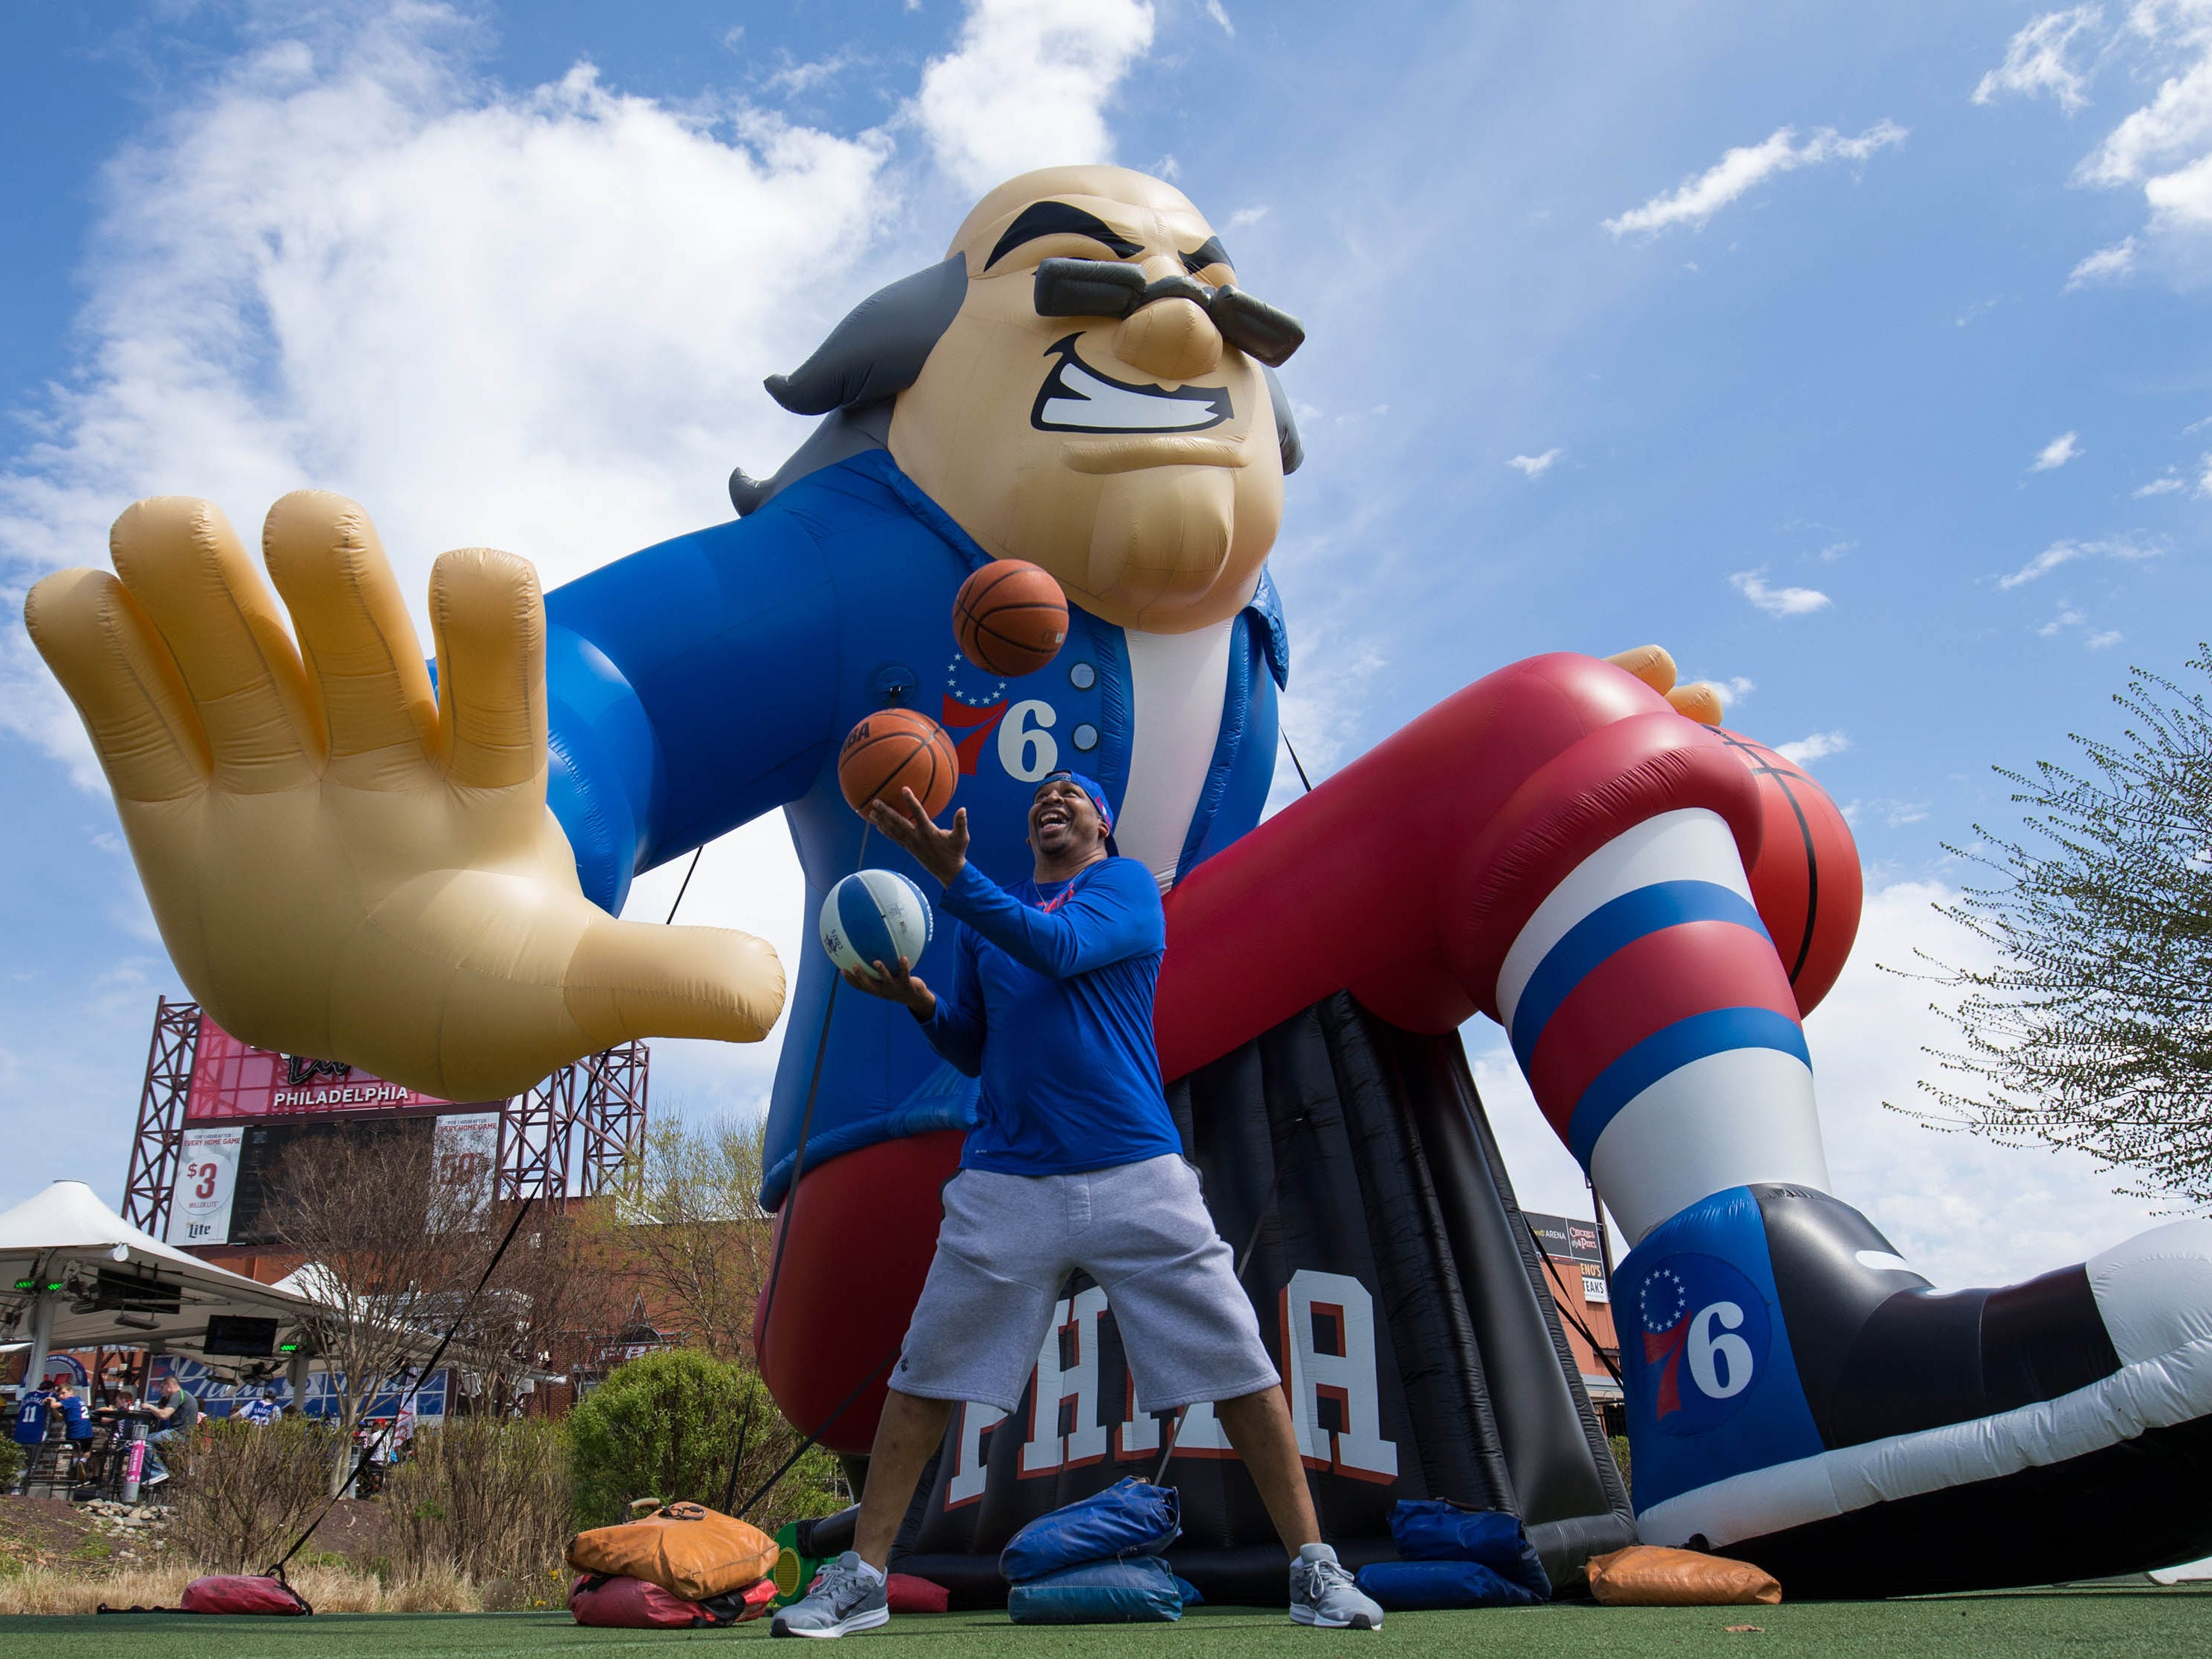 April 13: Delaware Blue Coats ambassador of basketball Joe Richmond juggles balls in front of a giant inflatable of Ben Franklin  before Game 1 of the first-round series between the 76ers and the Nets.